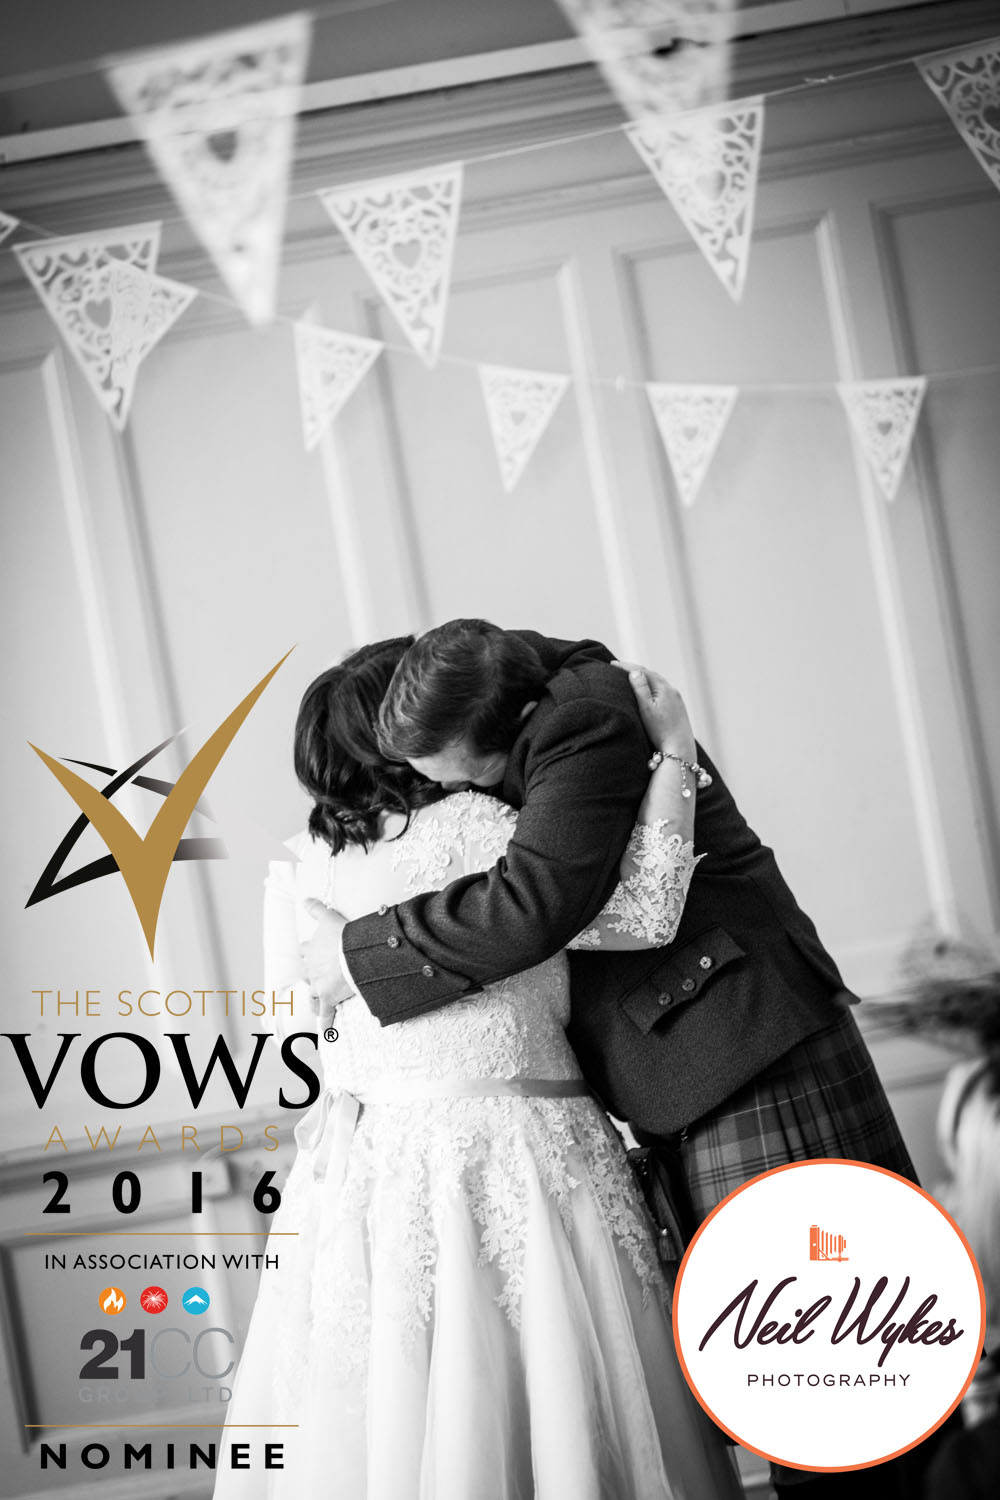 NeilWykesPhotographyVOWSawards2016-8.jpg